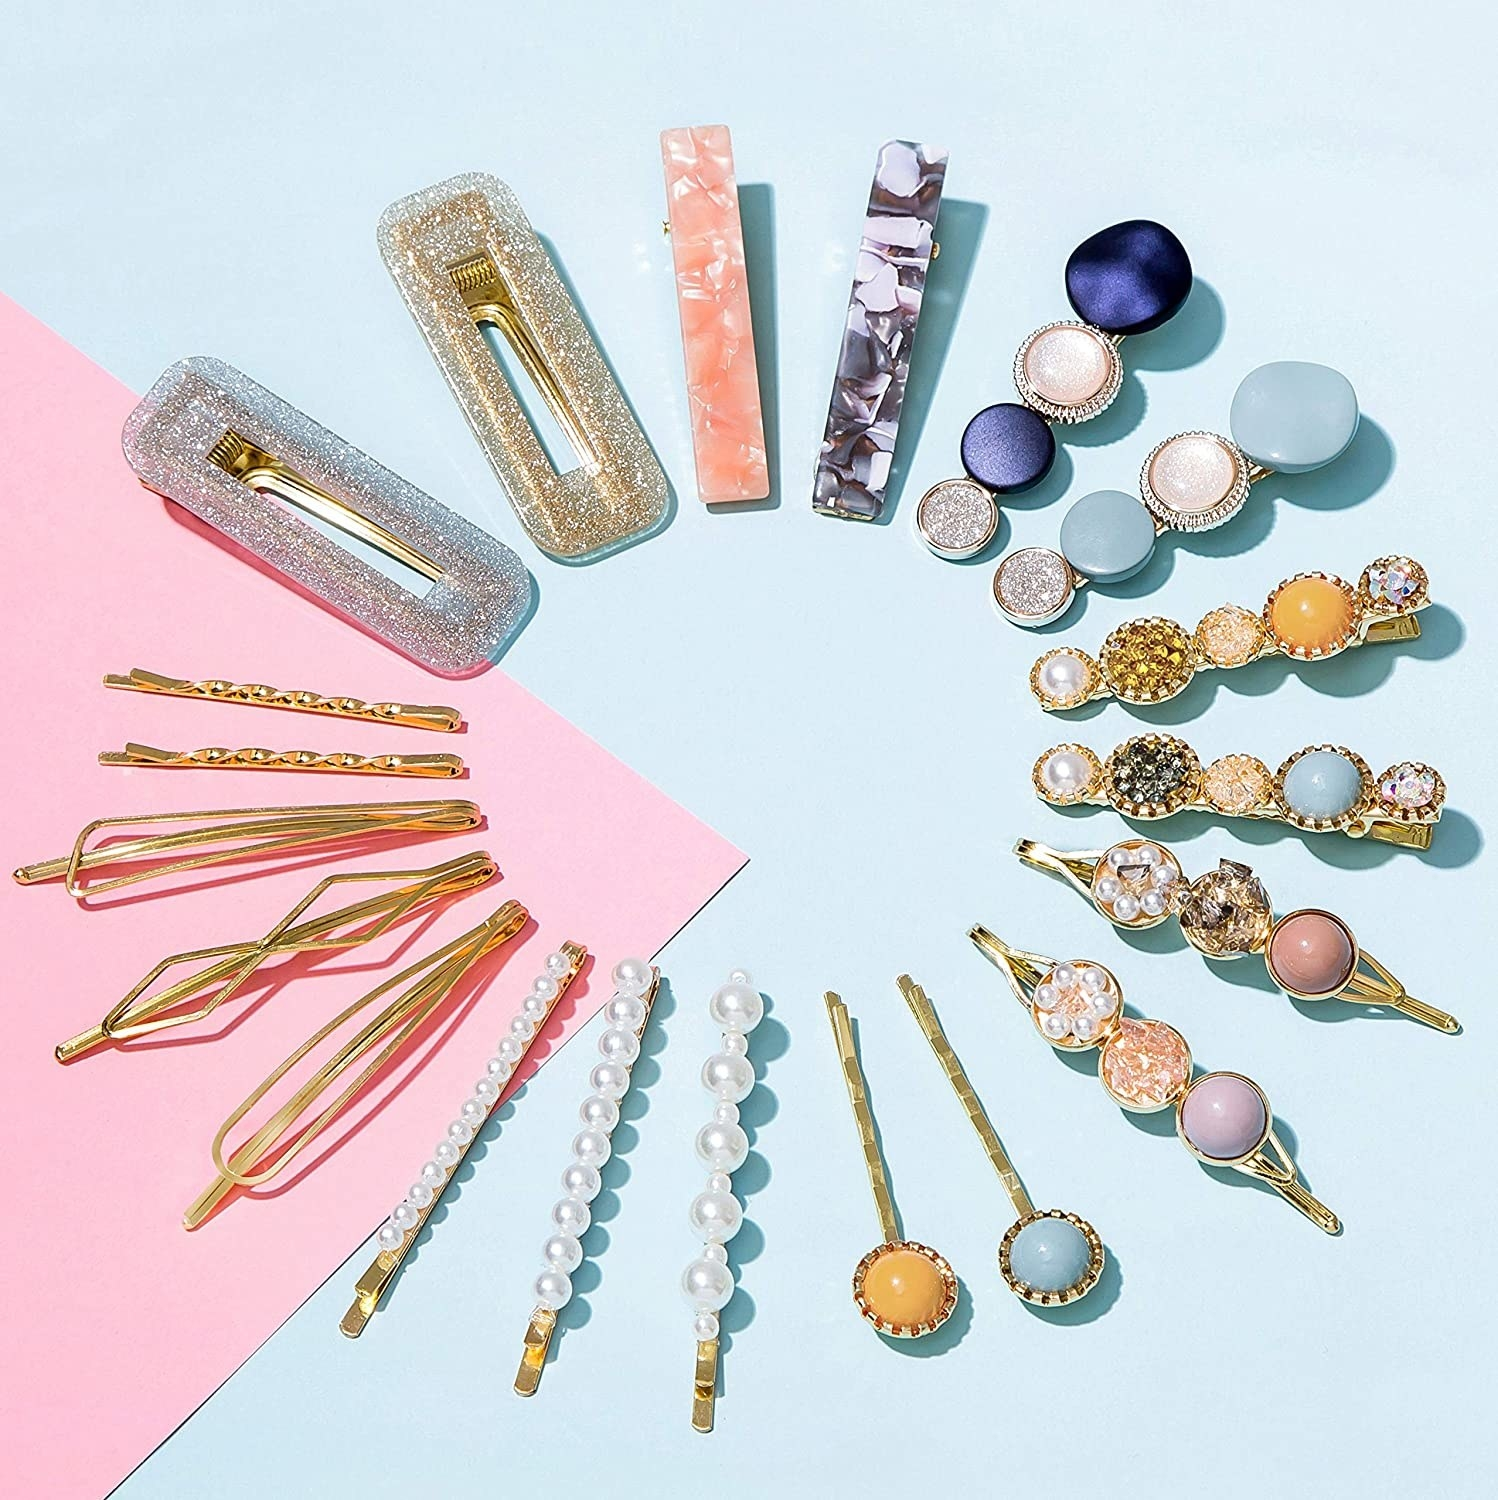 A flatlay of the full set of clips on a colourful background